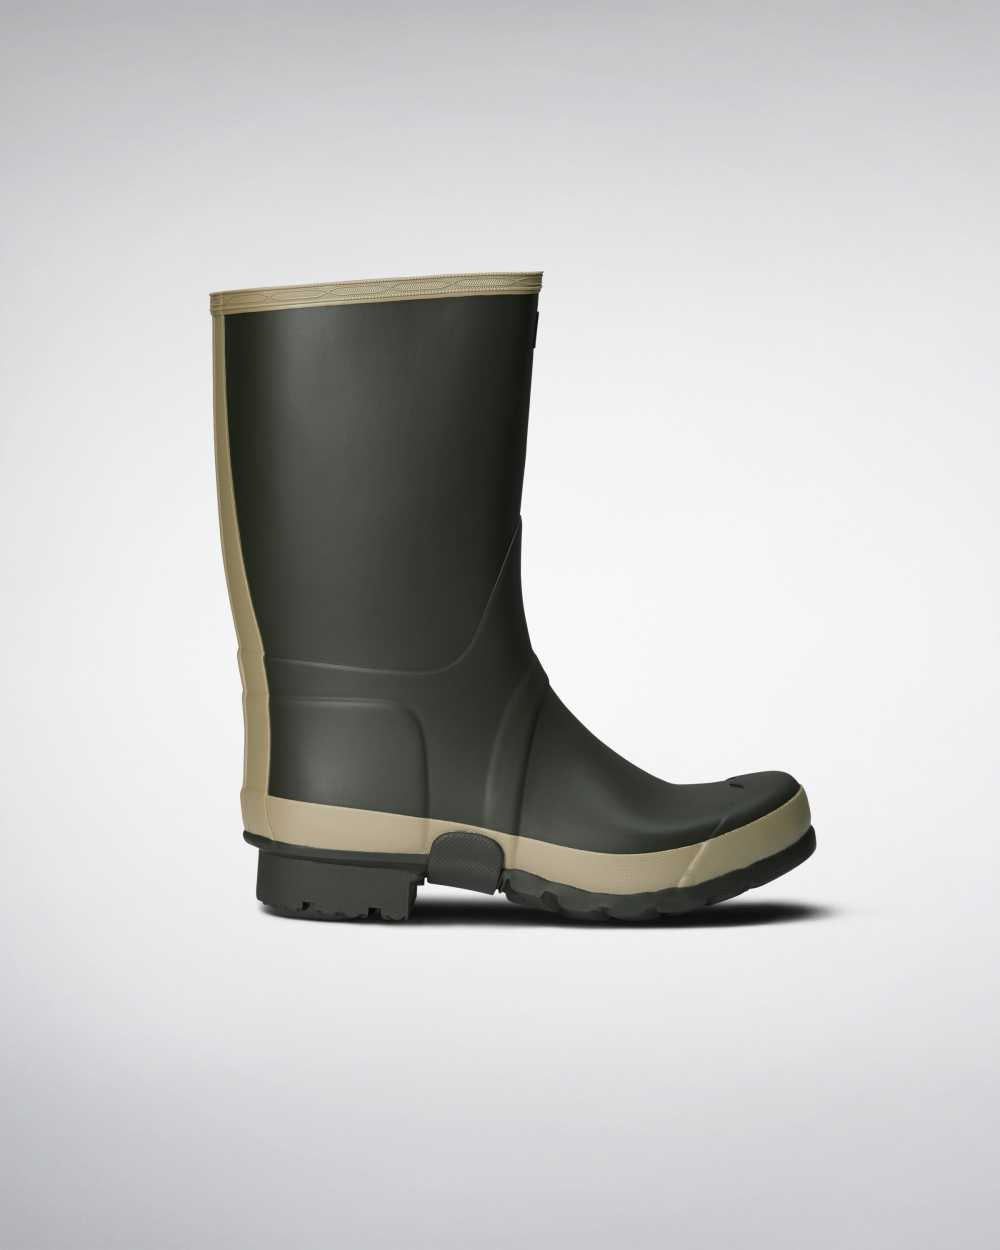 Hunter Gardener Mens Tall Wellington Rain Boots In Green Australia (KTGZ-87143)